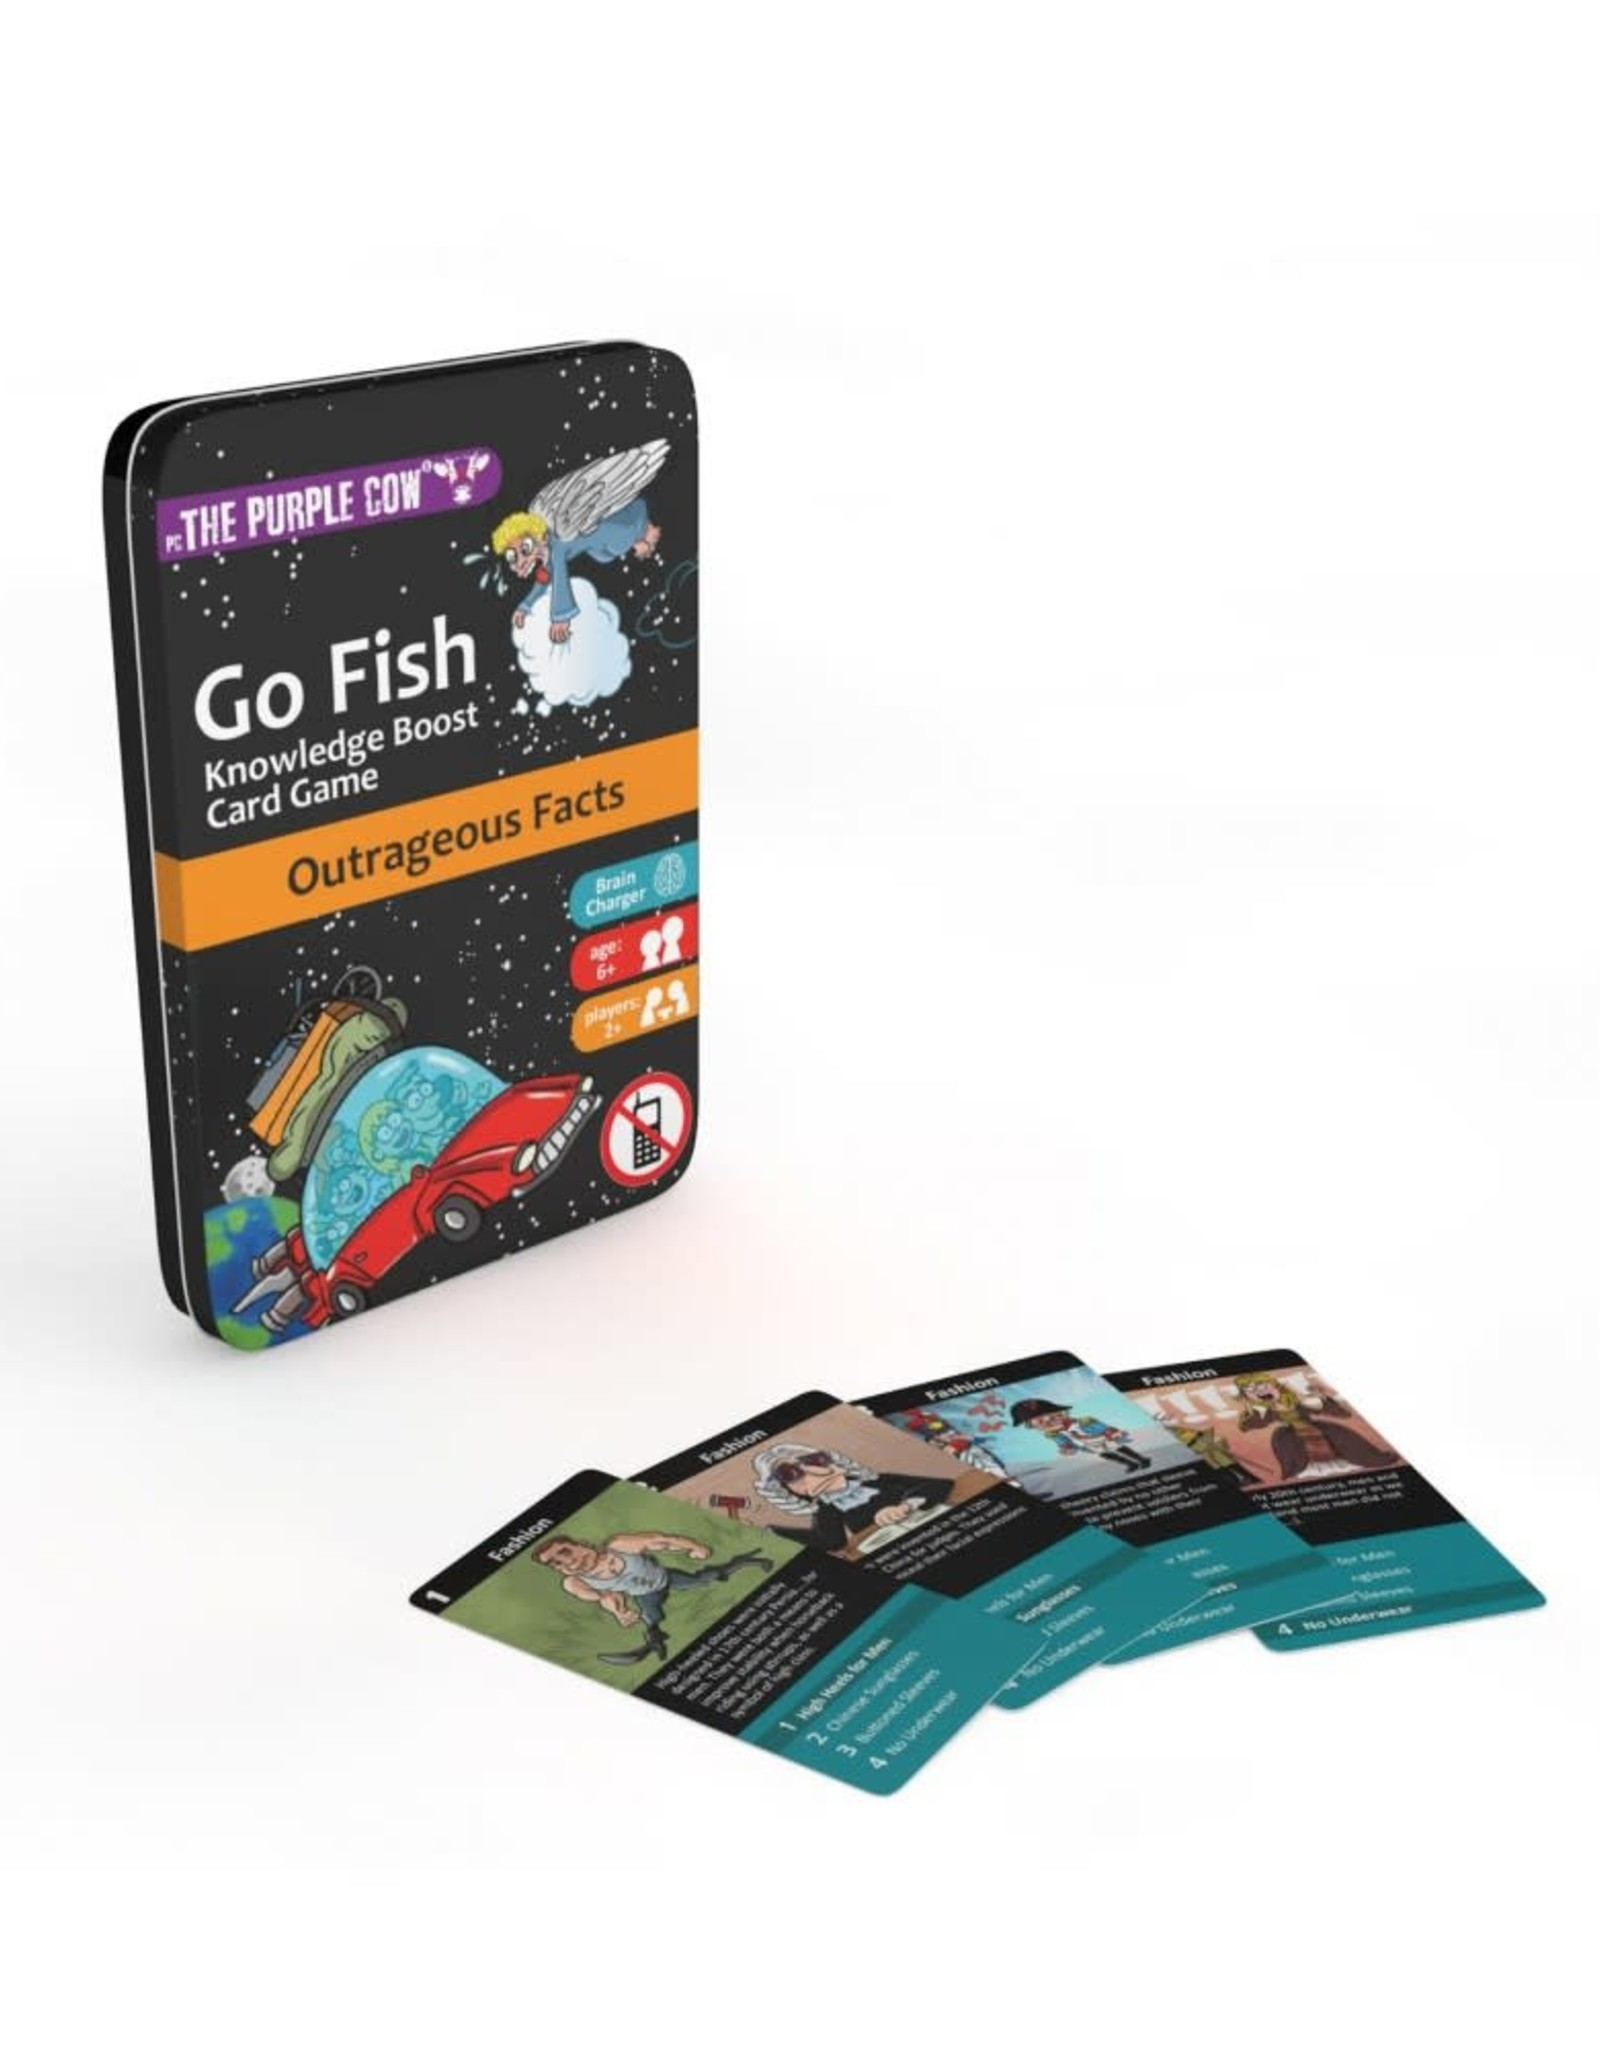 The Purple Cow Go Fish Outrageous Facts